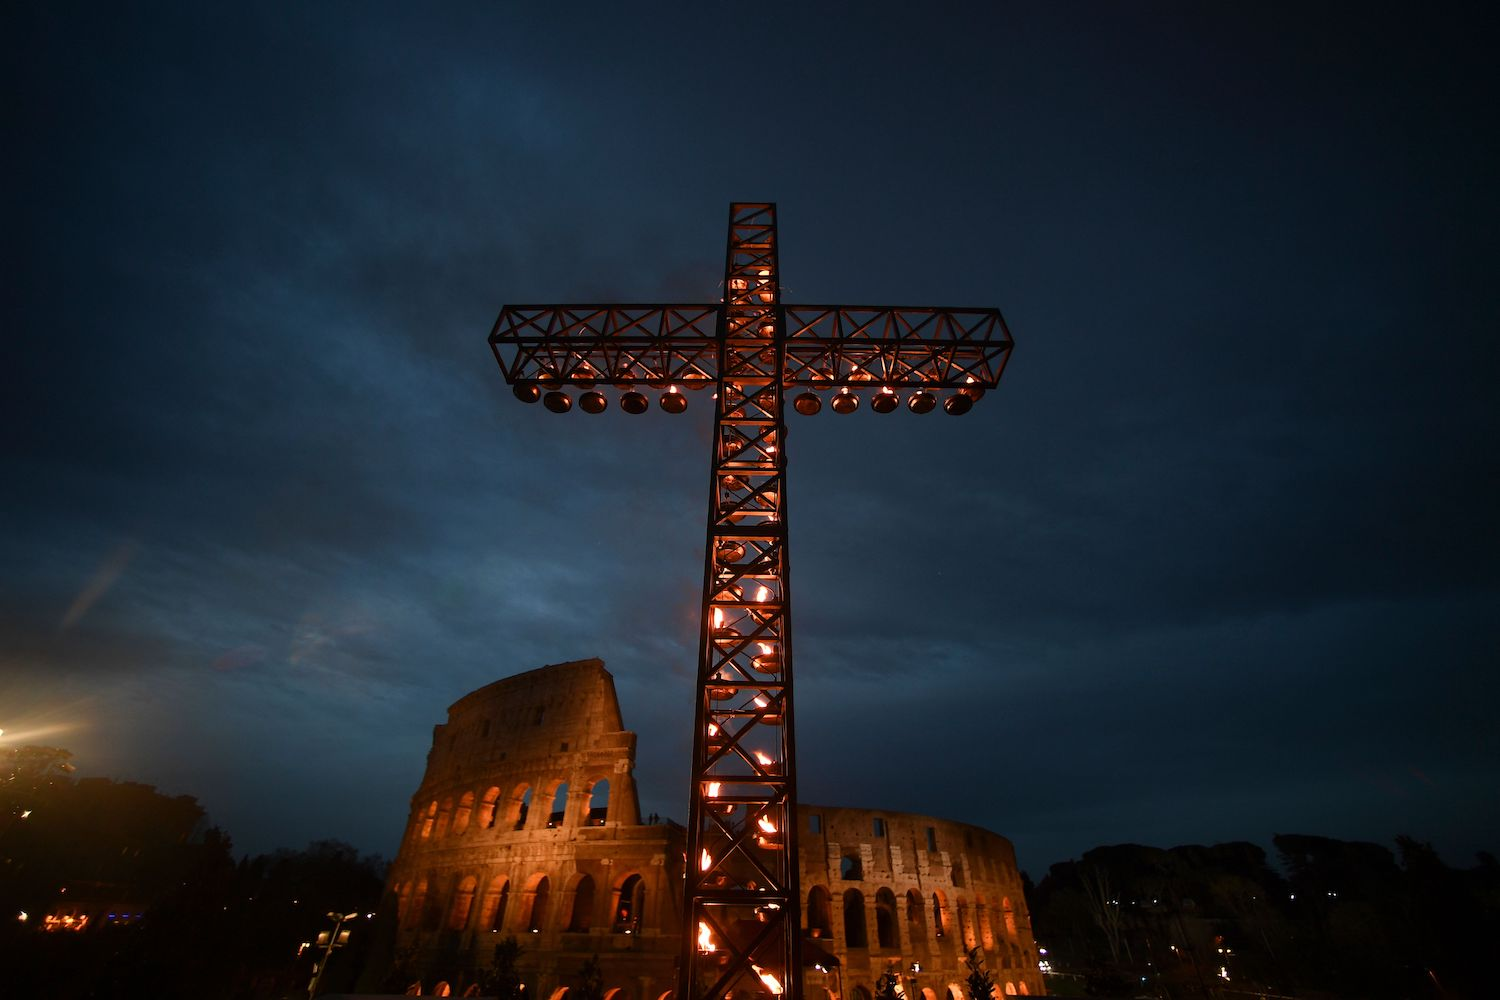 A cross is lighted before the arrival of Pope Francis for the Via Crucis (Way of the Cross) torchlight procession at the ancient Colosseum on Good Friday, on March 30, 2018 in Rome. Christians around the world are marking the Holy Week, commemorating the crucifixion of Jesus Christ, leading up to his resurrection on Easter. / AFP PHOTO / Filippo MONTEFORTE        (Photo credit should read FILIPPO MONTEFORTE/AFP/Getty Images)